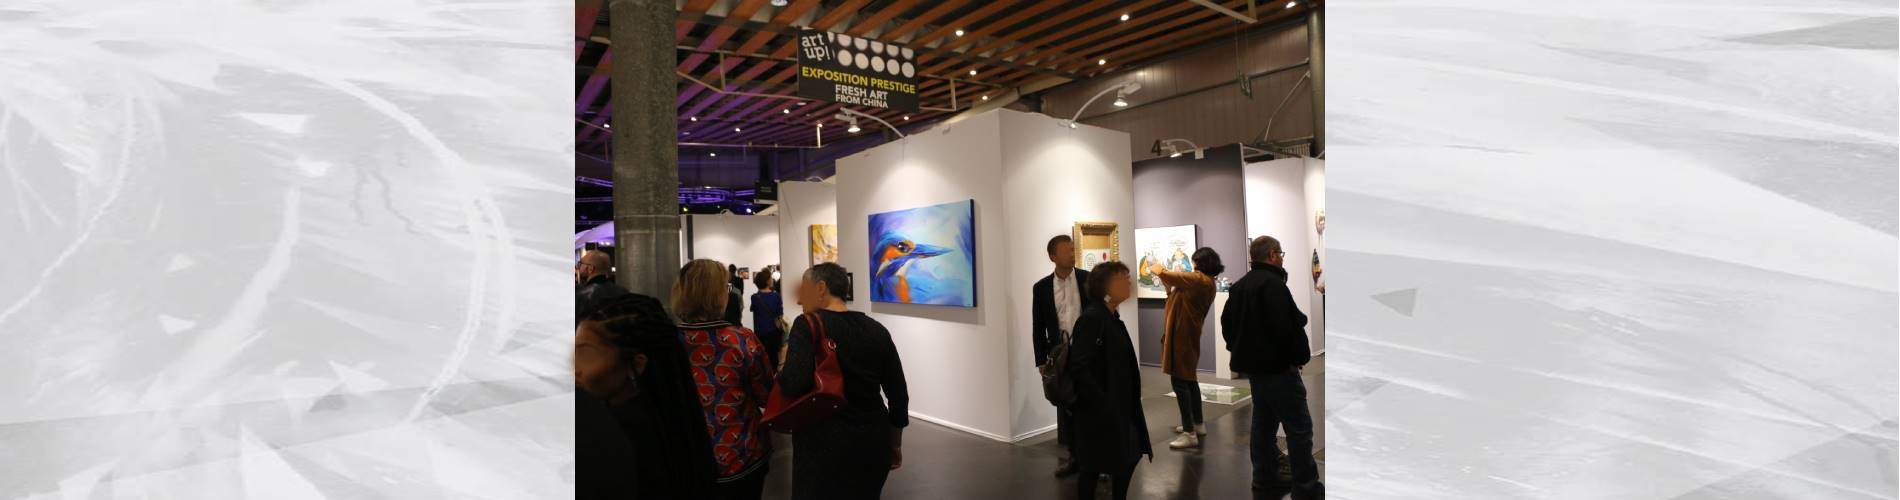 art up lille contemporain mehsos